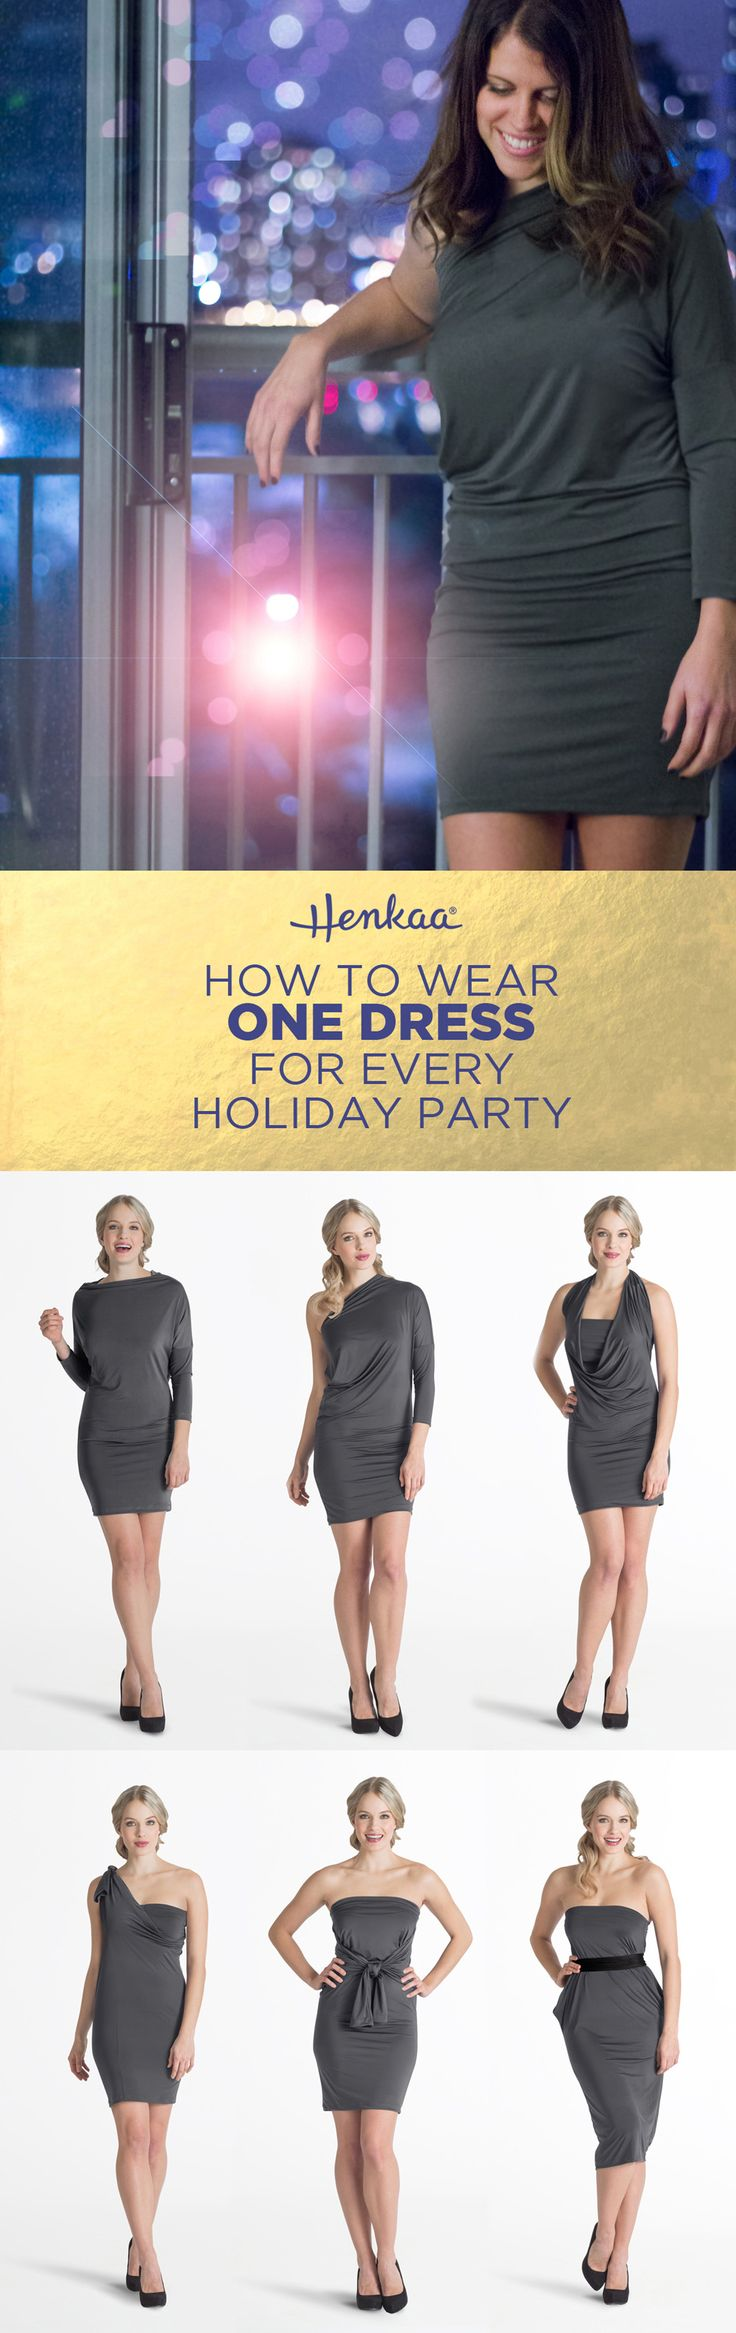 How to wear one dress for every party this holiday season: pick a dress that transforms! There's no need to buy 10 new dresses when one has so many possibilities for style!